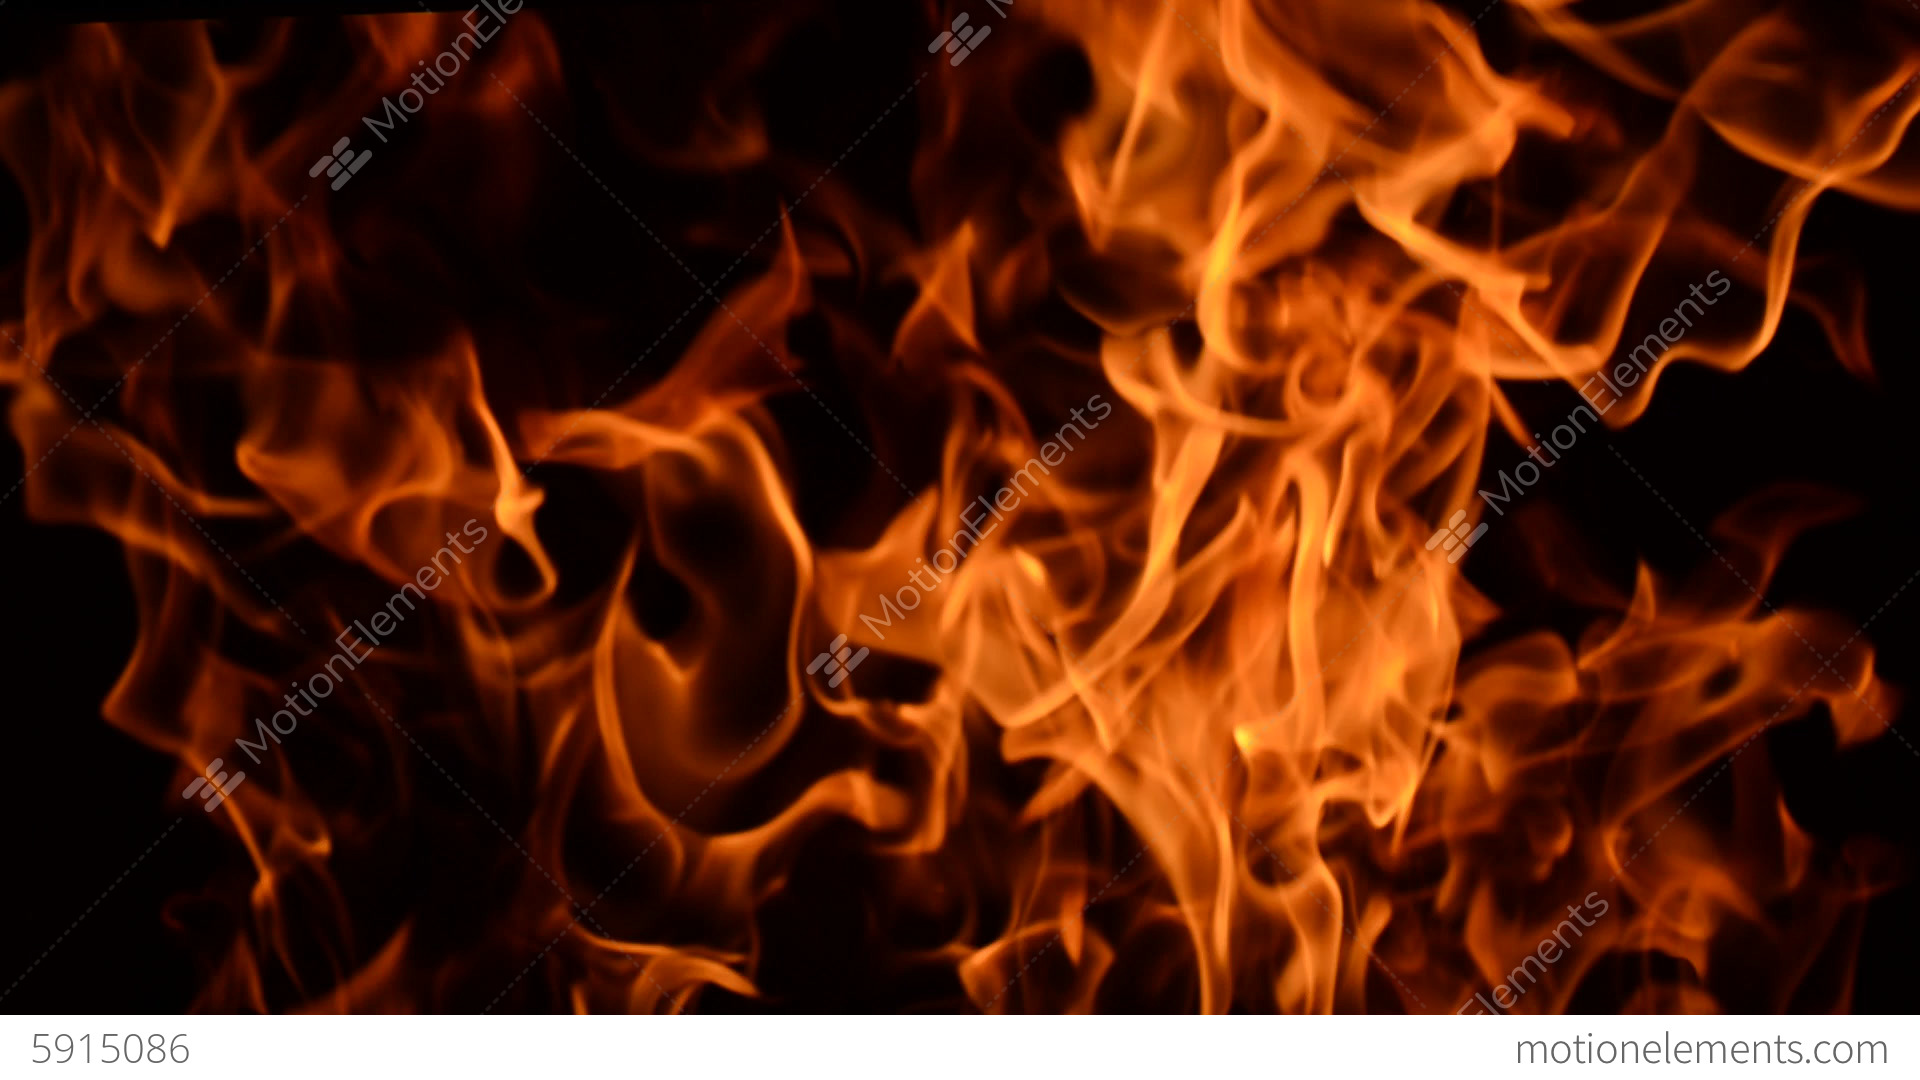 fire burning close up view low key effect stock video footage